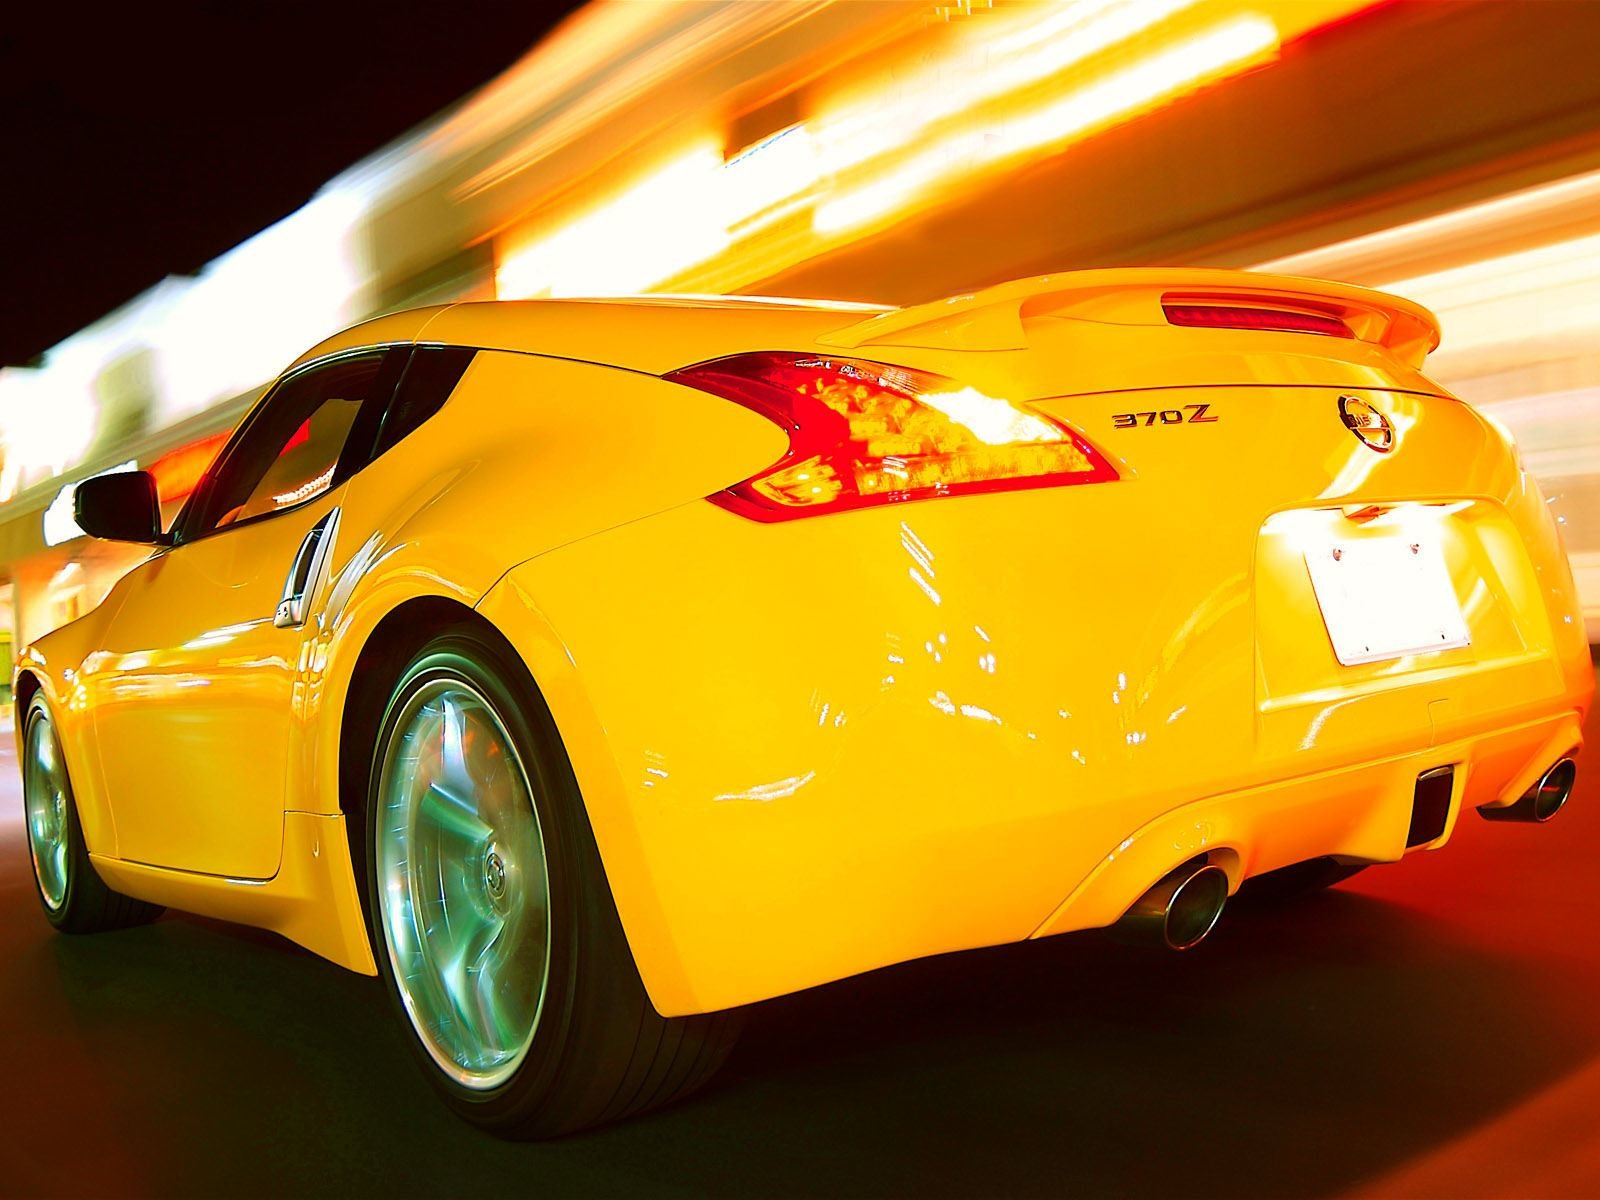 Latest 66 Nissan 370Z Hd Wallpapers Backgrounds Wallpaper Abyss Free Download